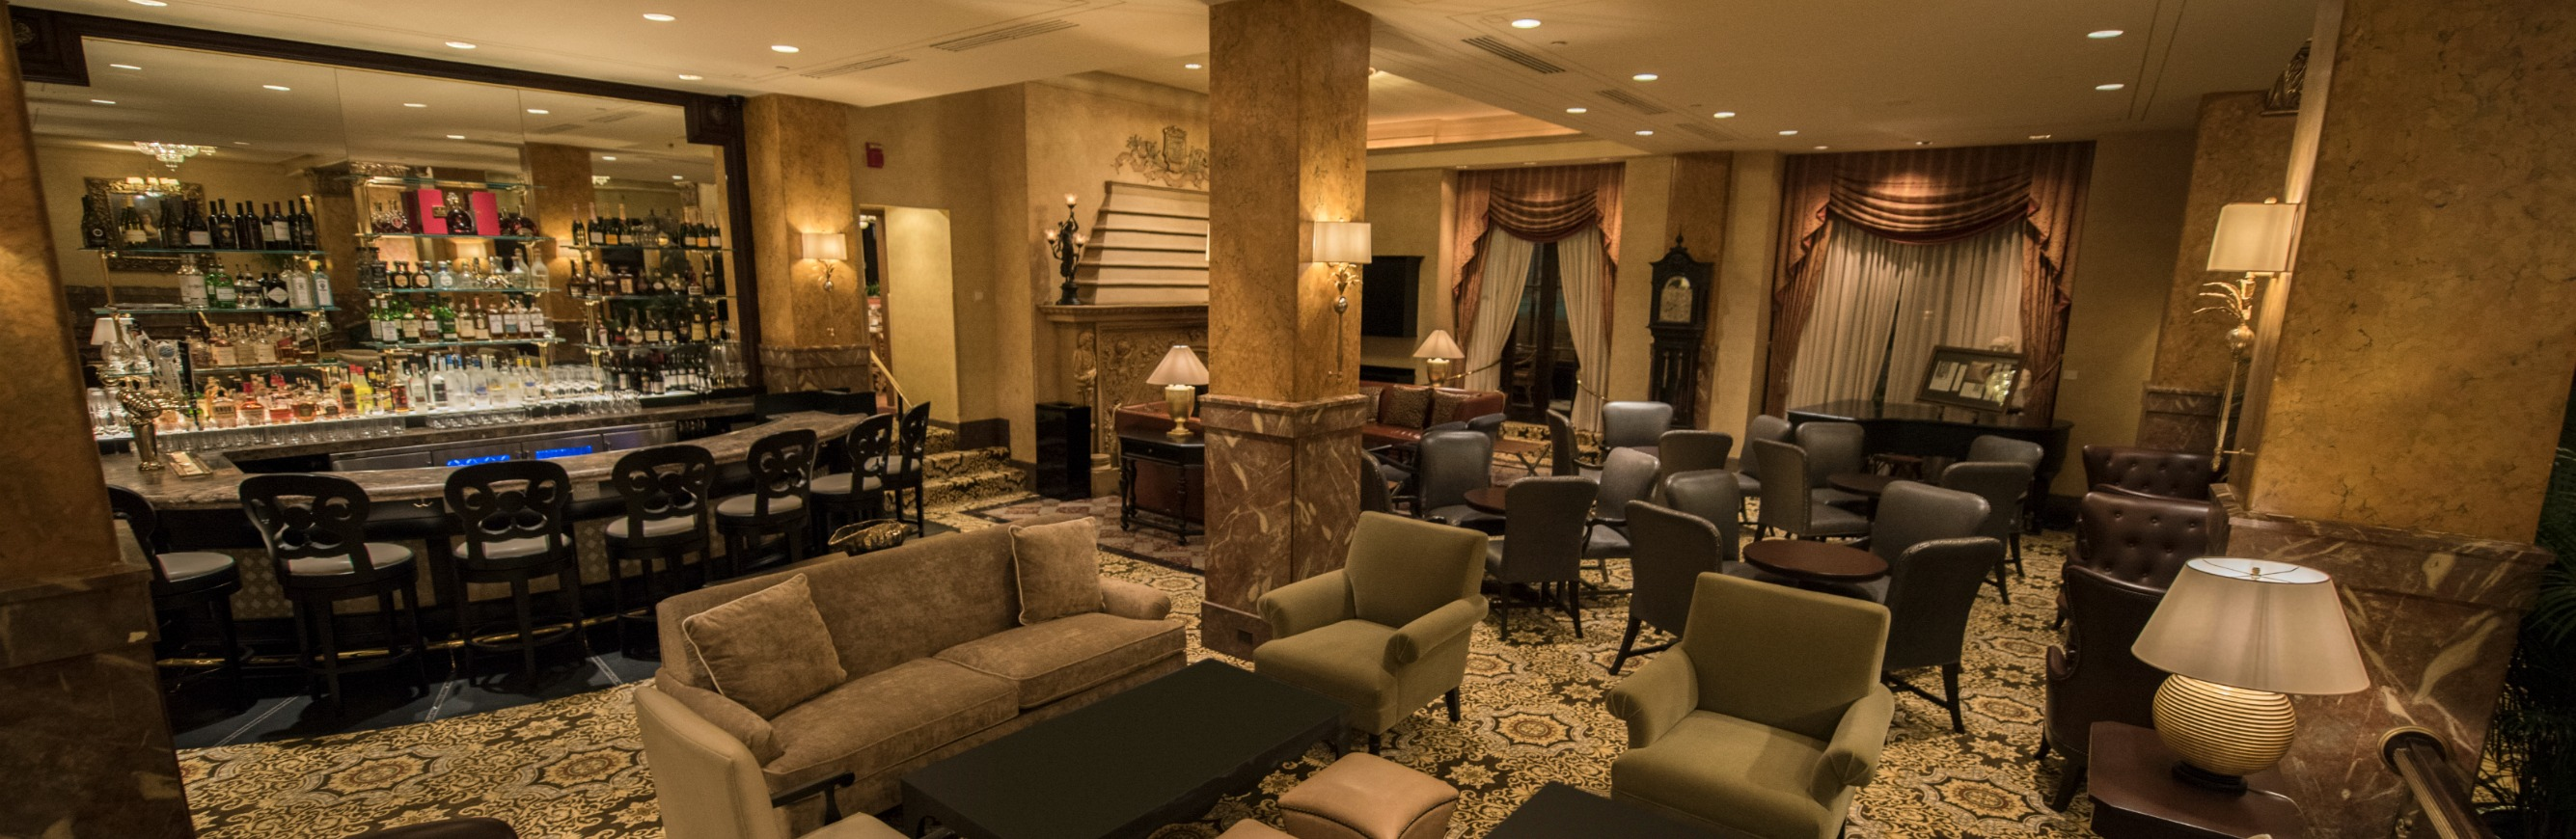 Downtown Milwaukee Bar and Lounge | Lobby Bar at The Pfister Hotel